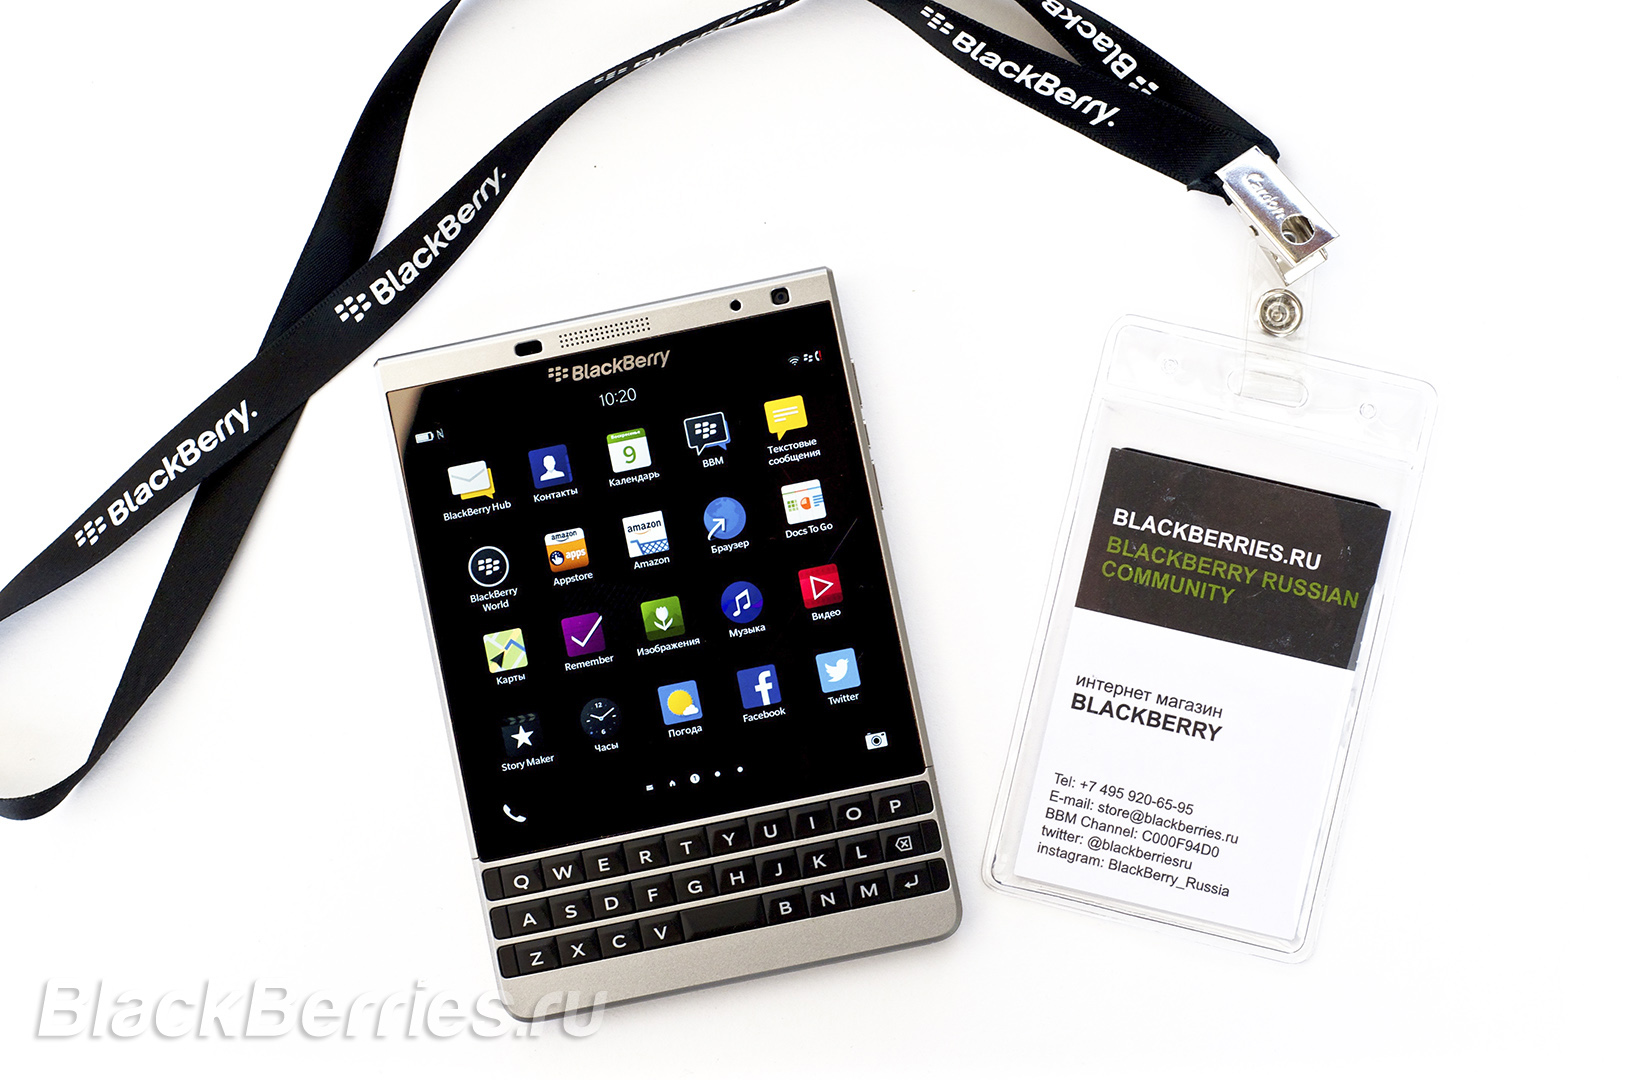 BlackBerry-Passport-Silver-Edition-Review-31